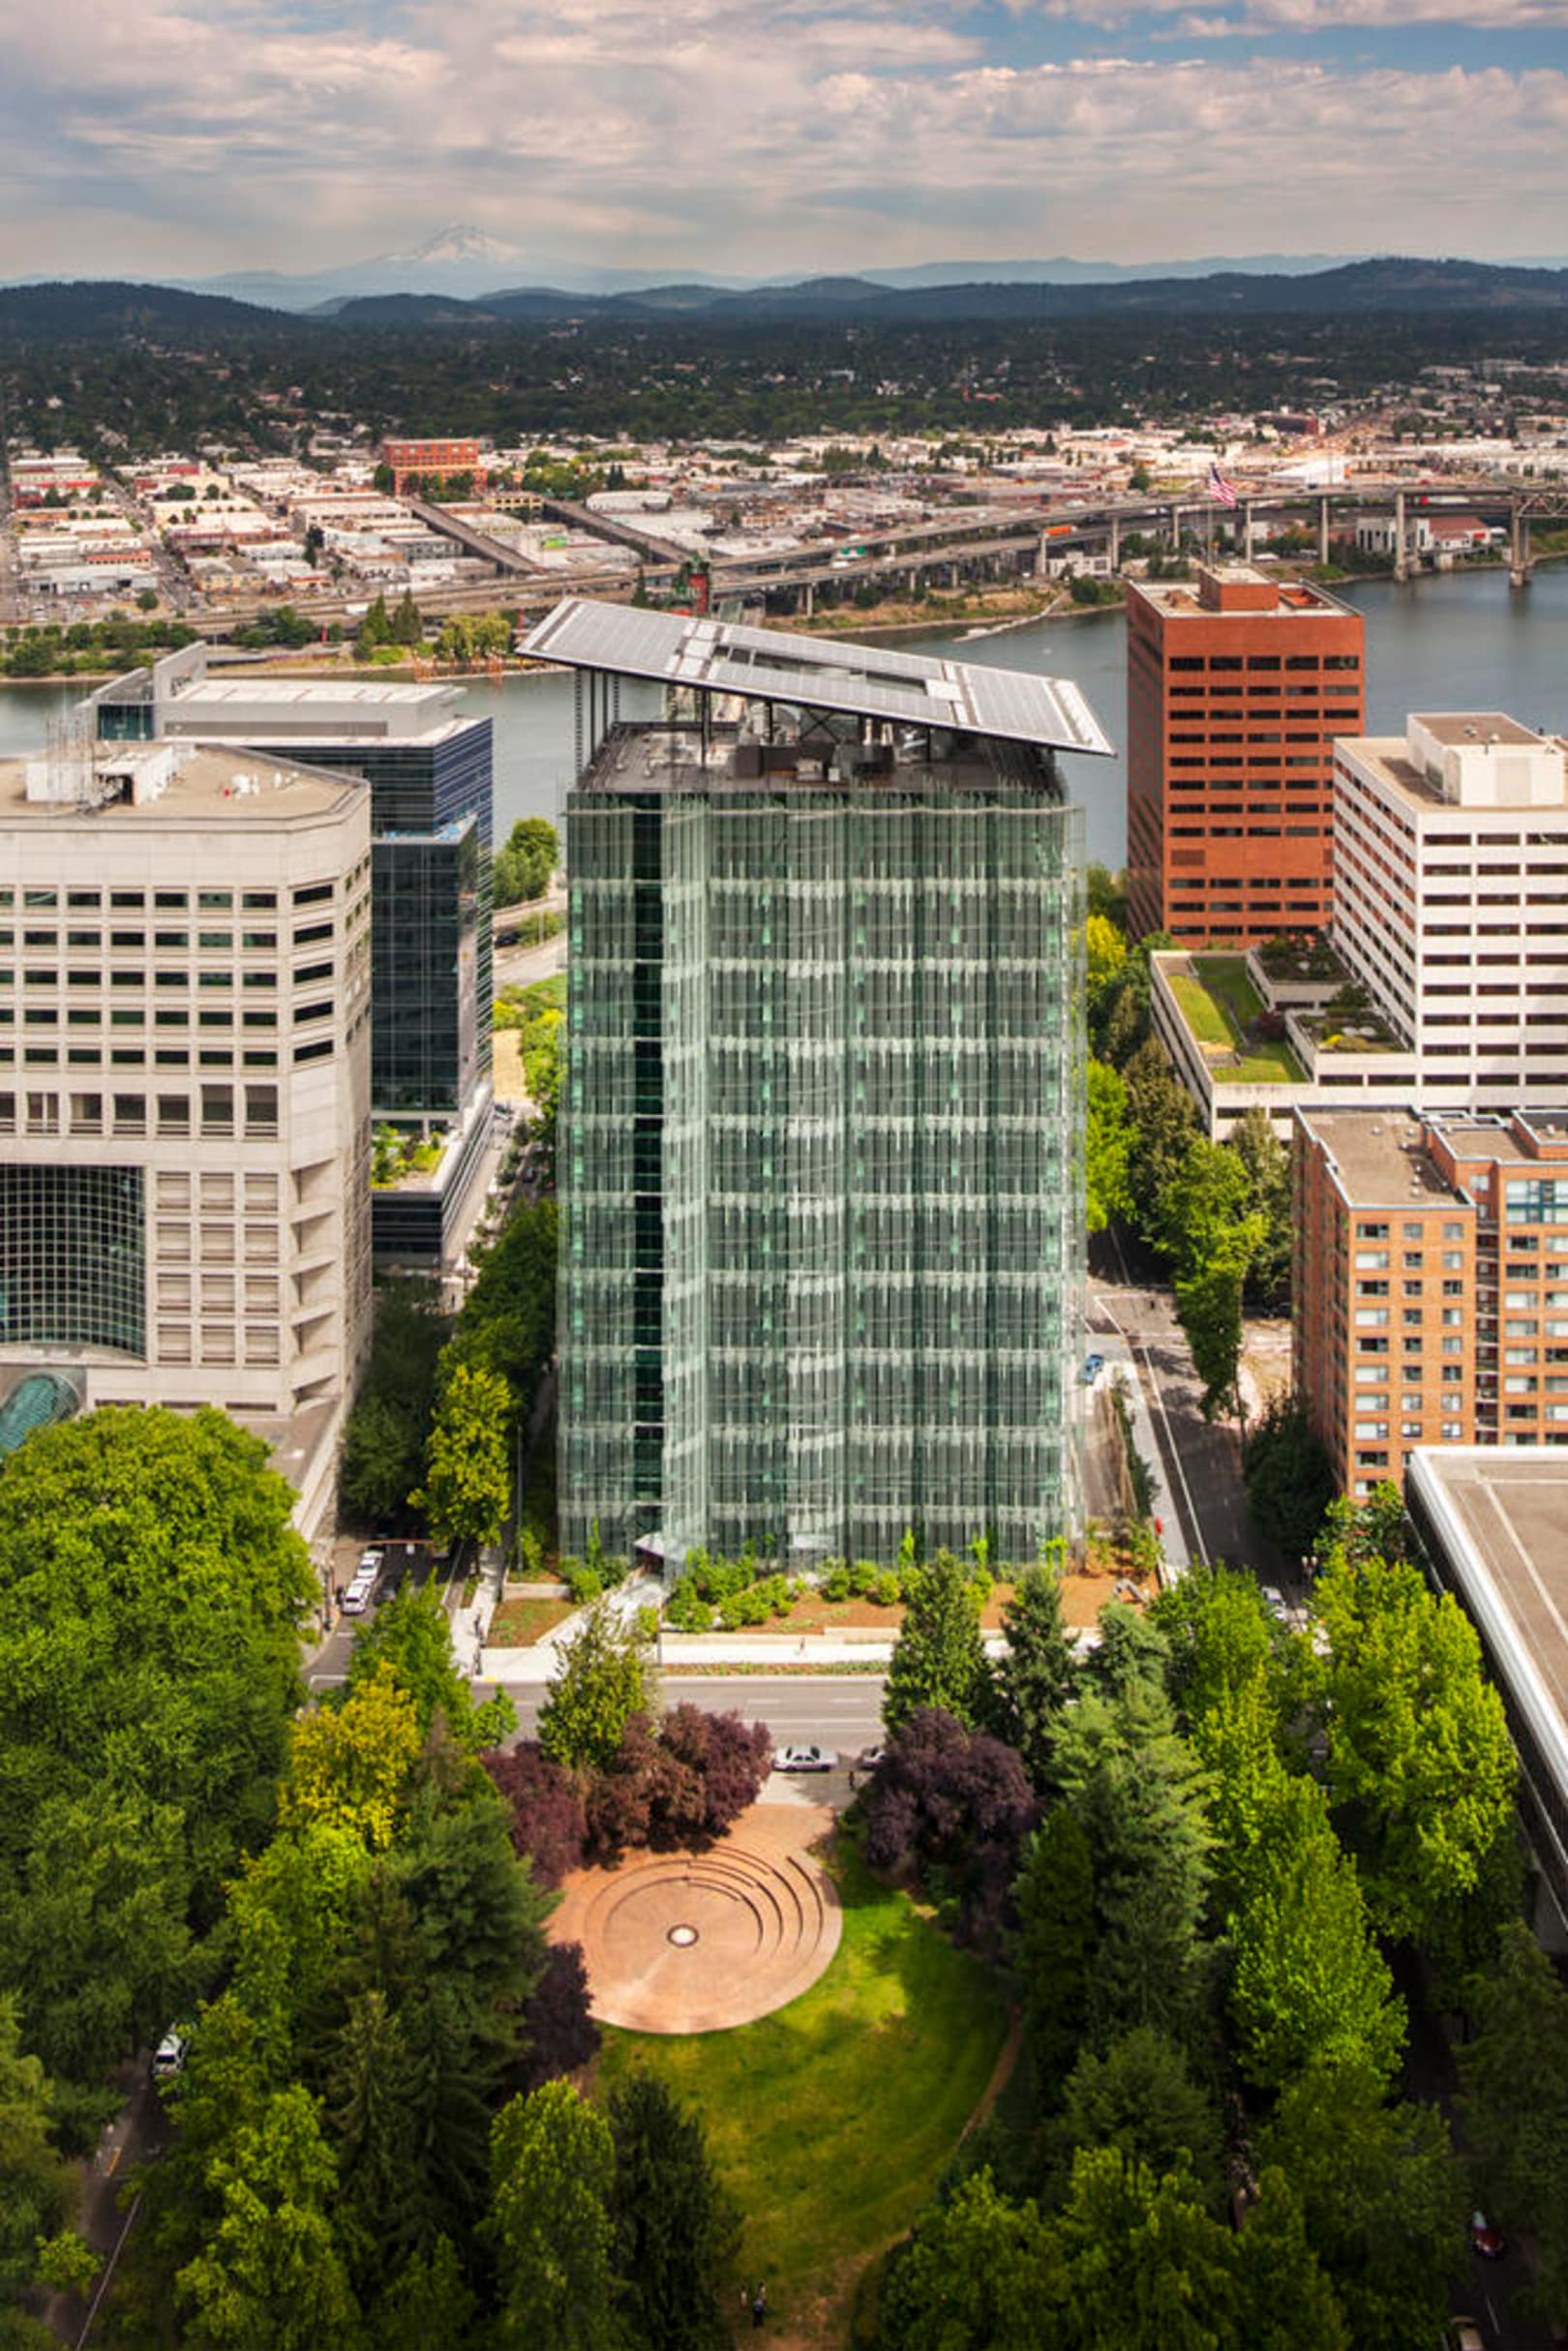 The Edith Green – Wendell Wyatt Federal Building